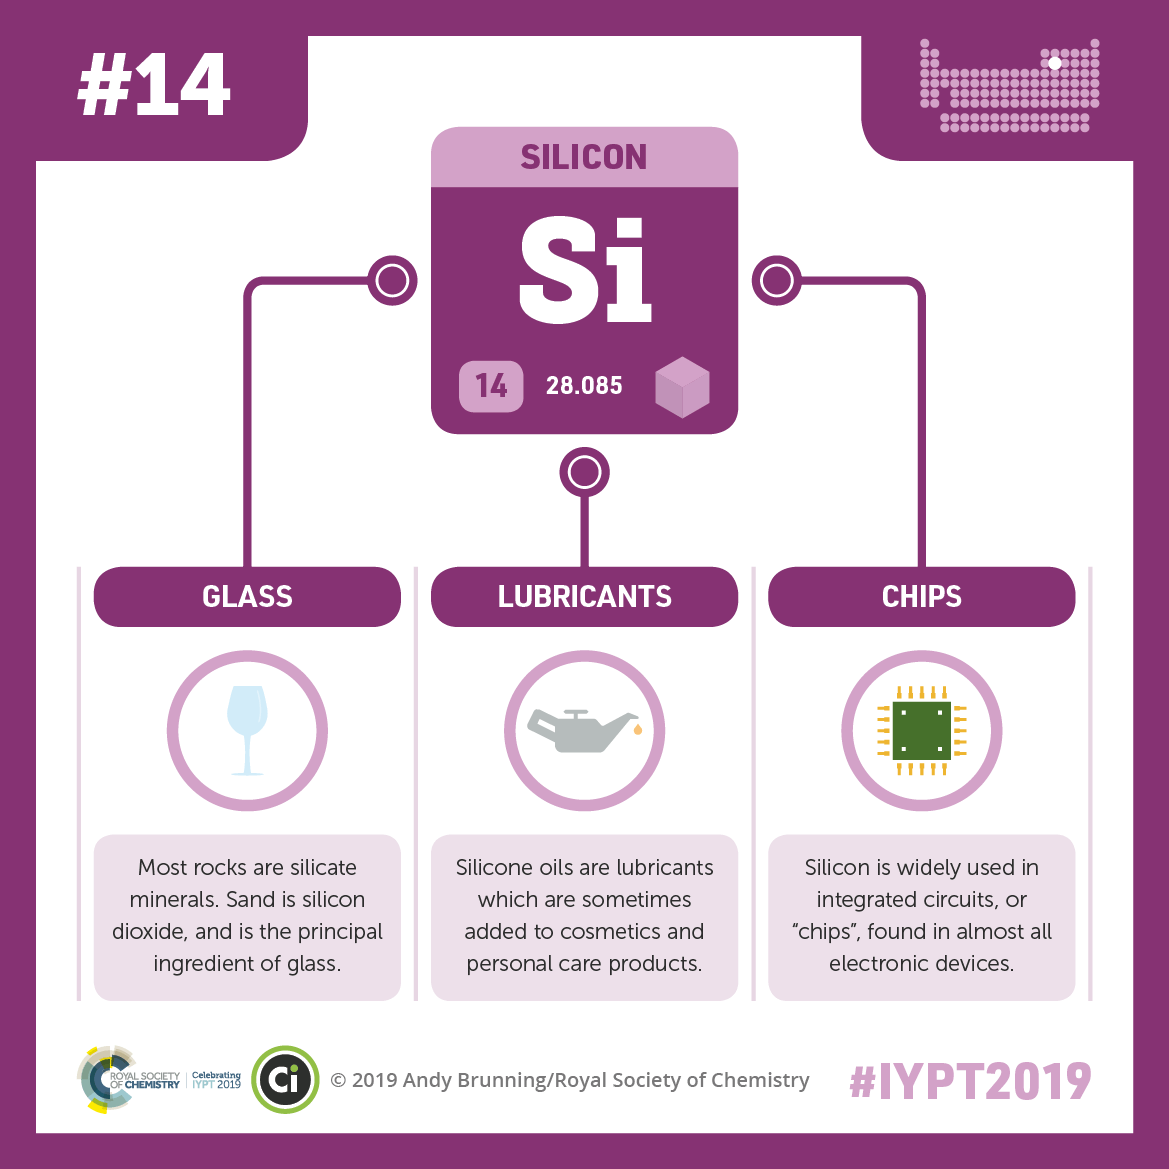 IYPT 2019 Elements 014: Silicon: Electronic devices, glass, and lubricants